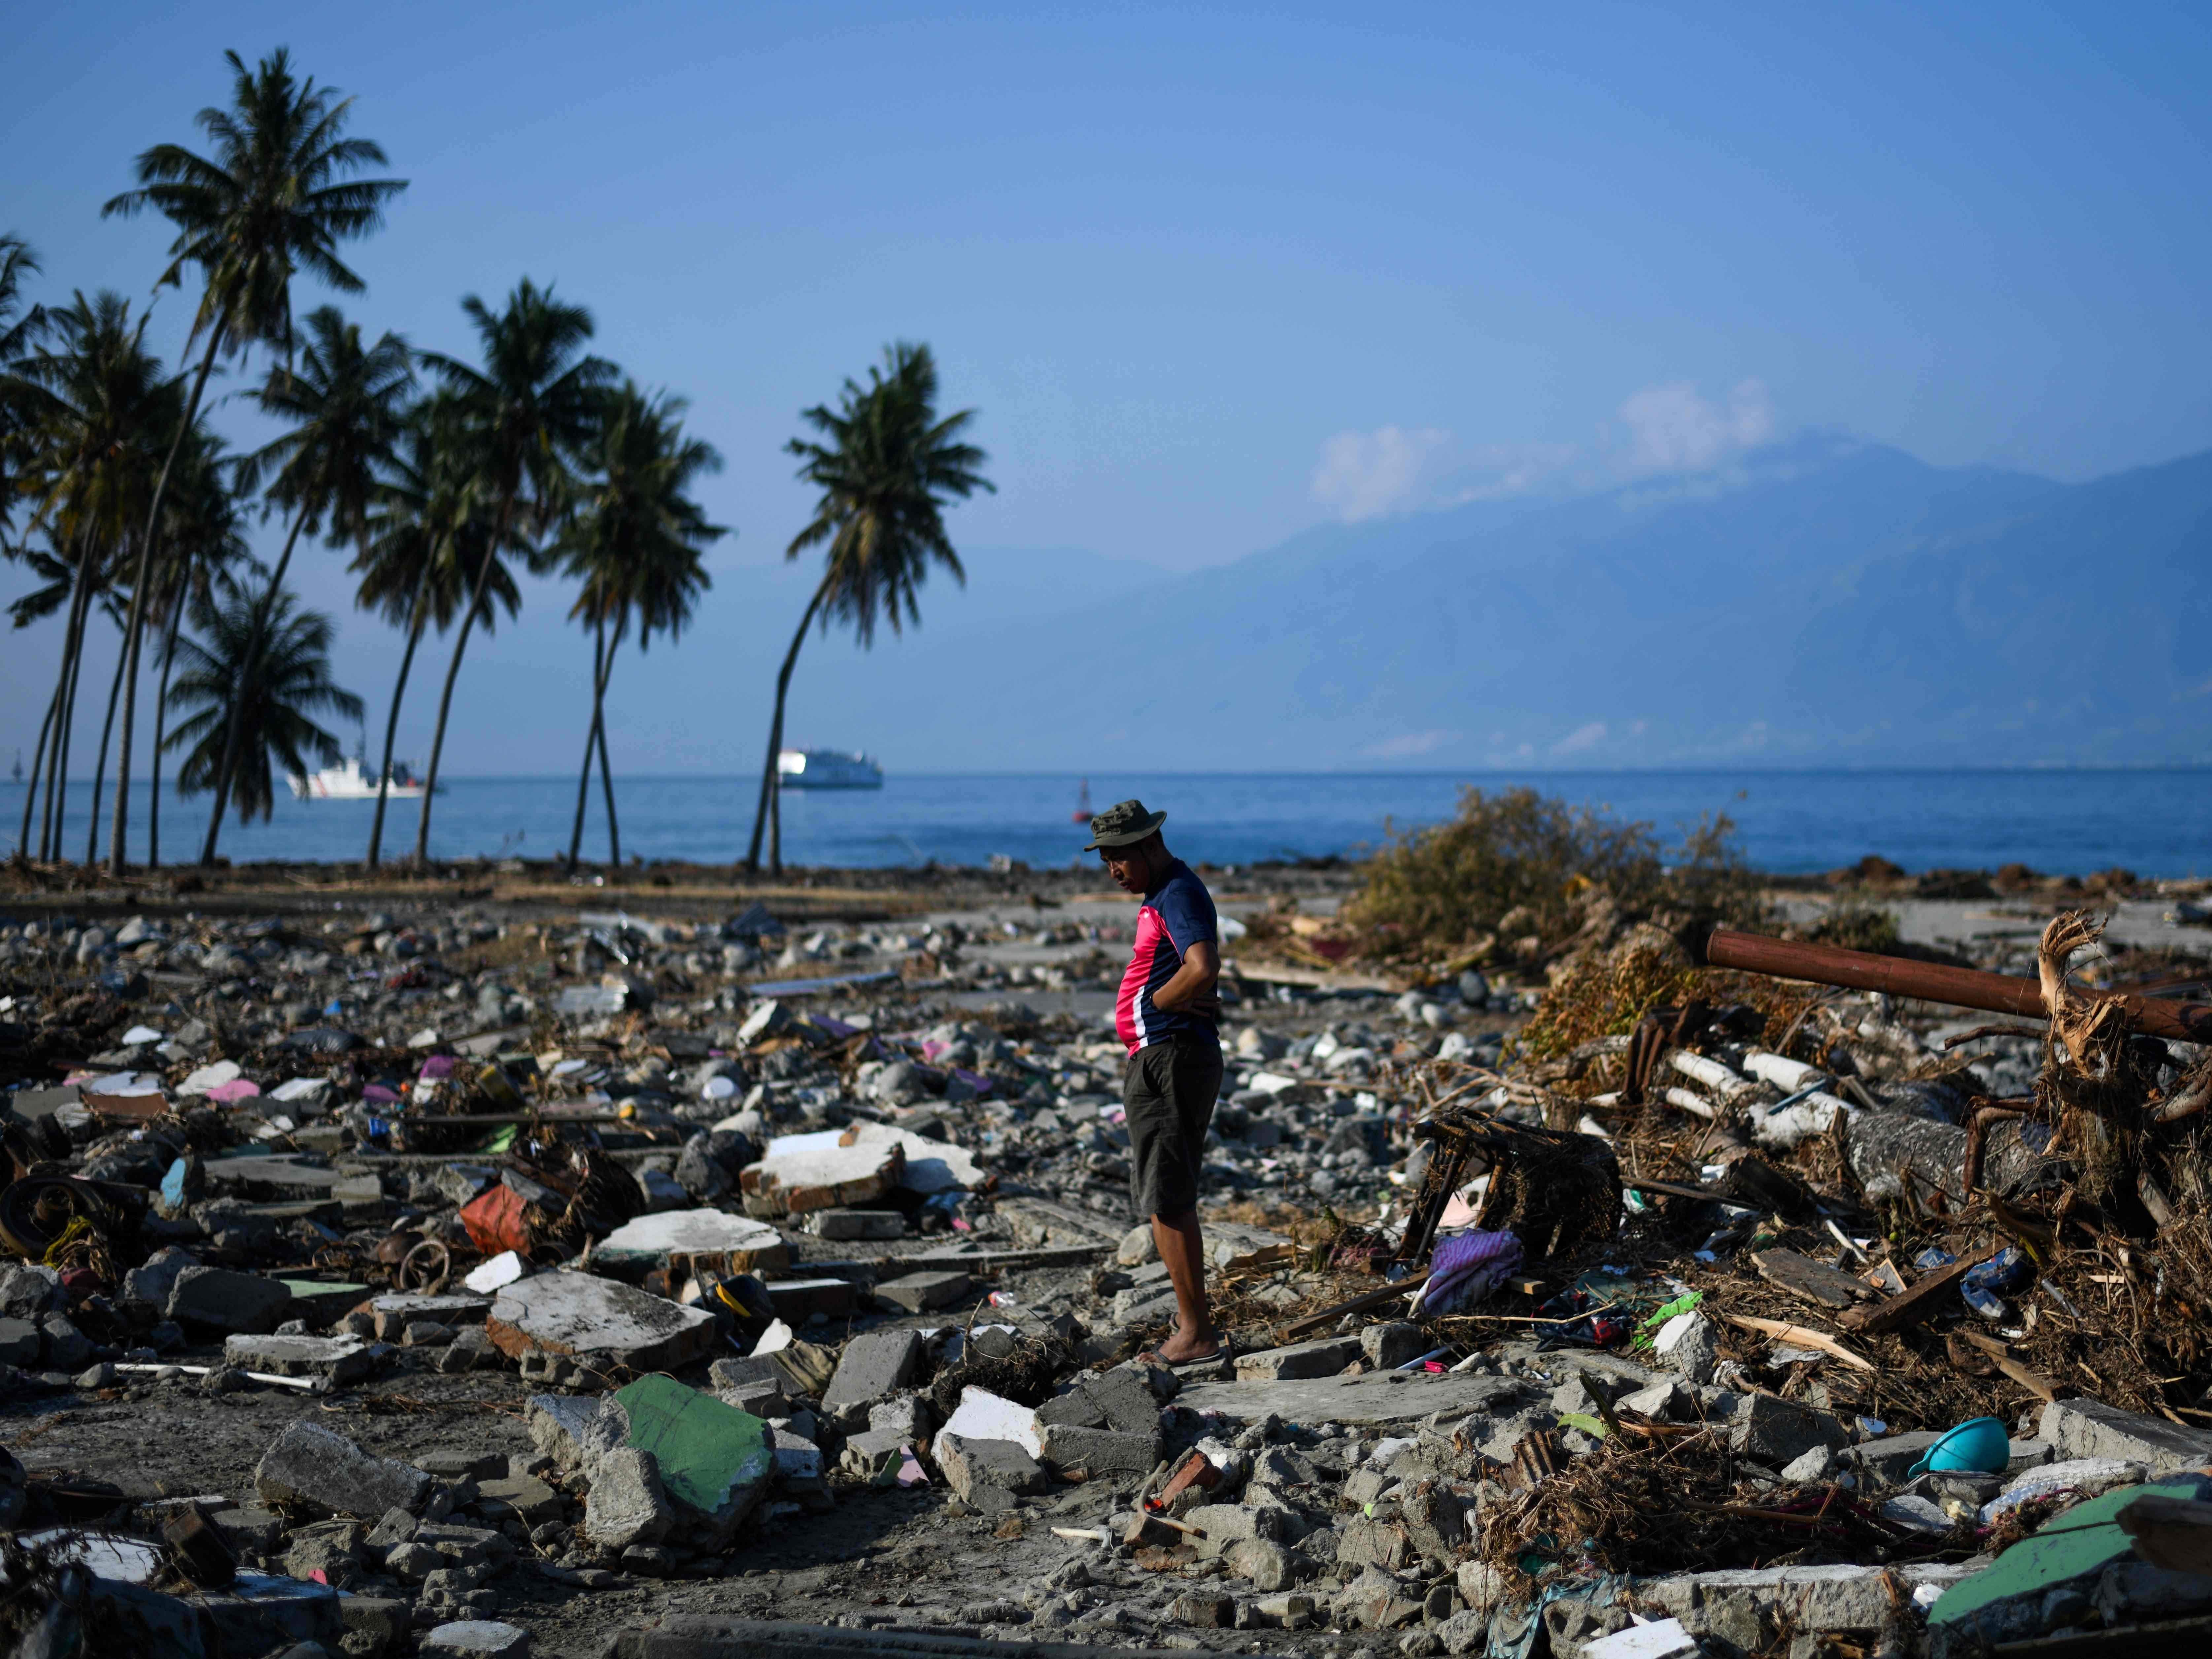 A quake survivor stands among debris in Wani, Indonesia's Central Sulawesi Oct. 3, 2018, after an earthquake and tsunami hit the area on Sept. 28.